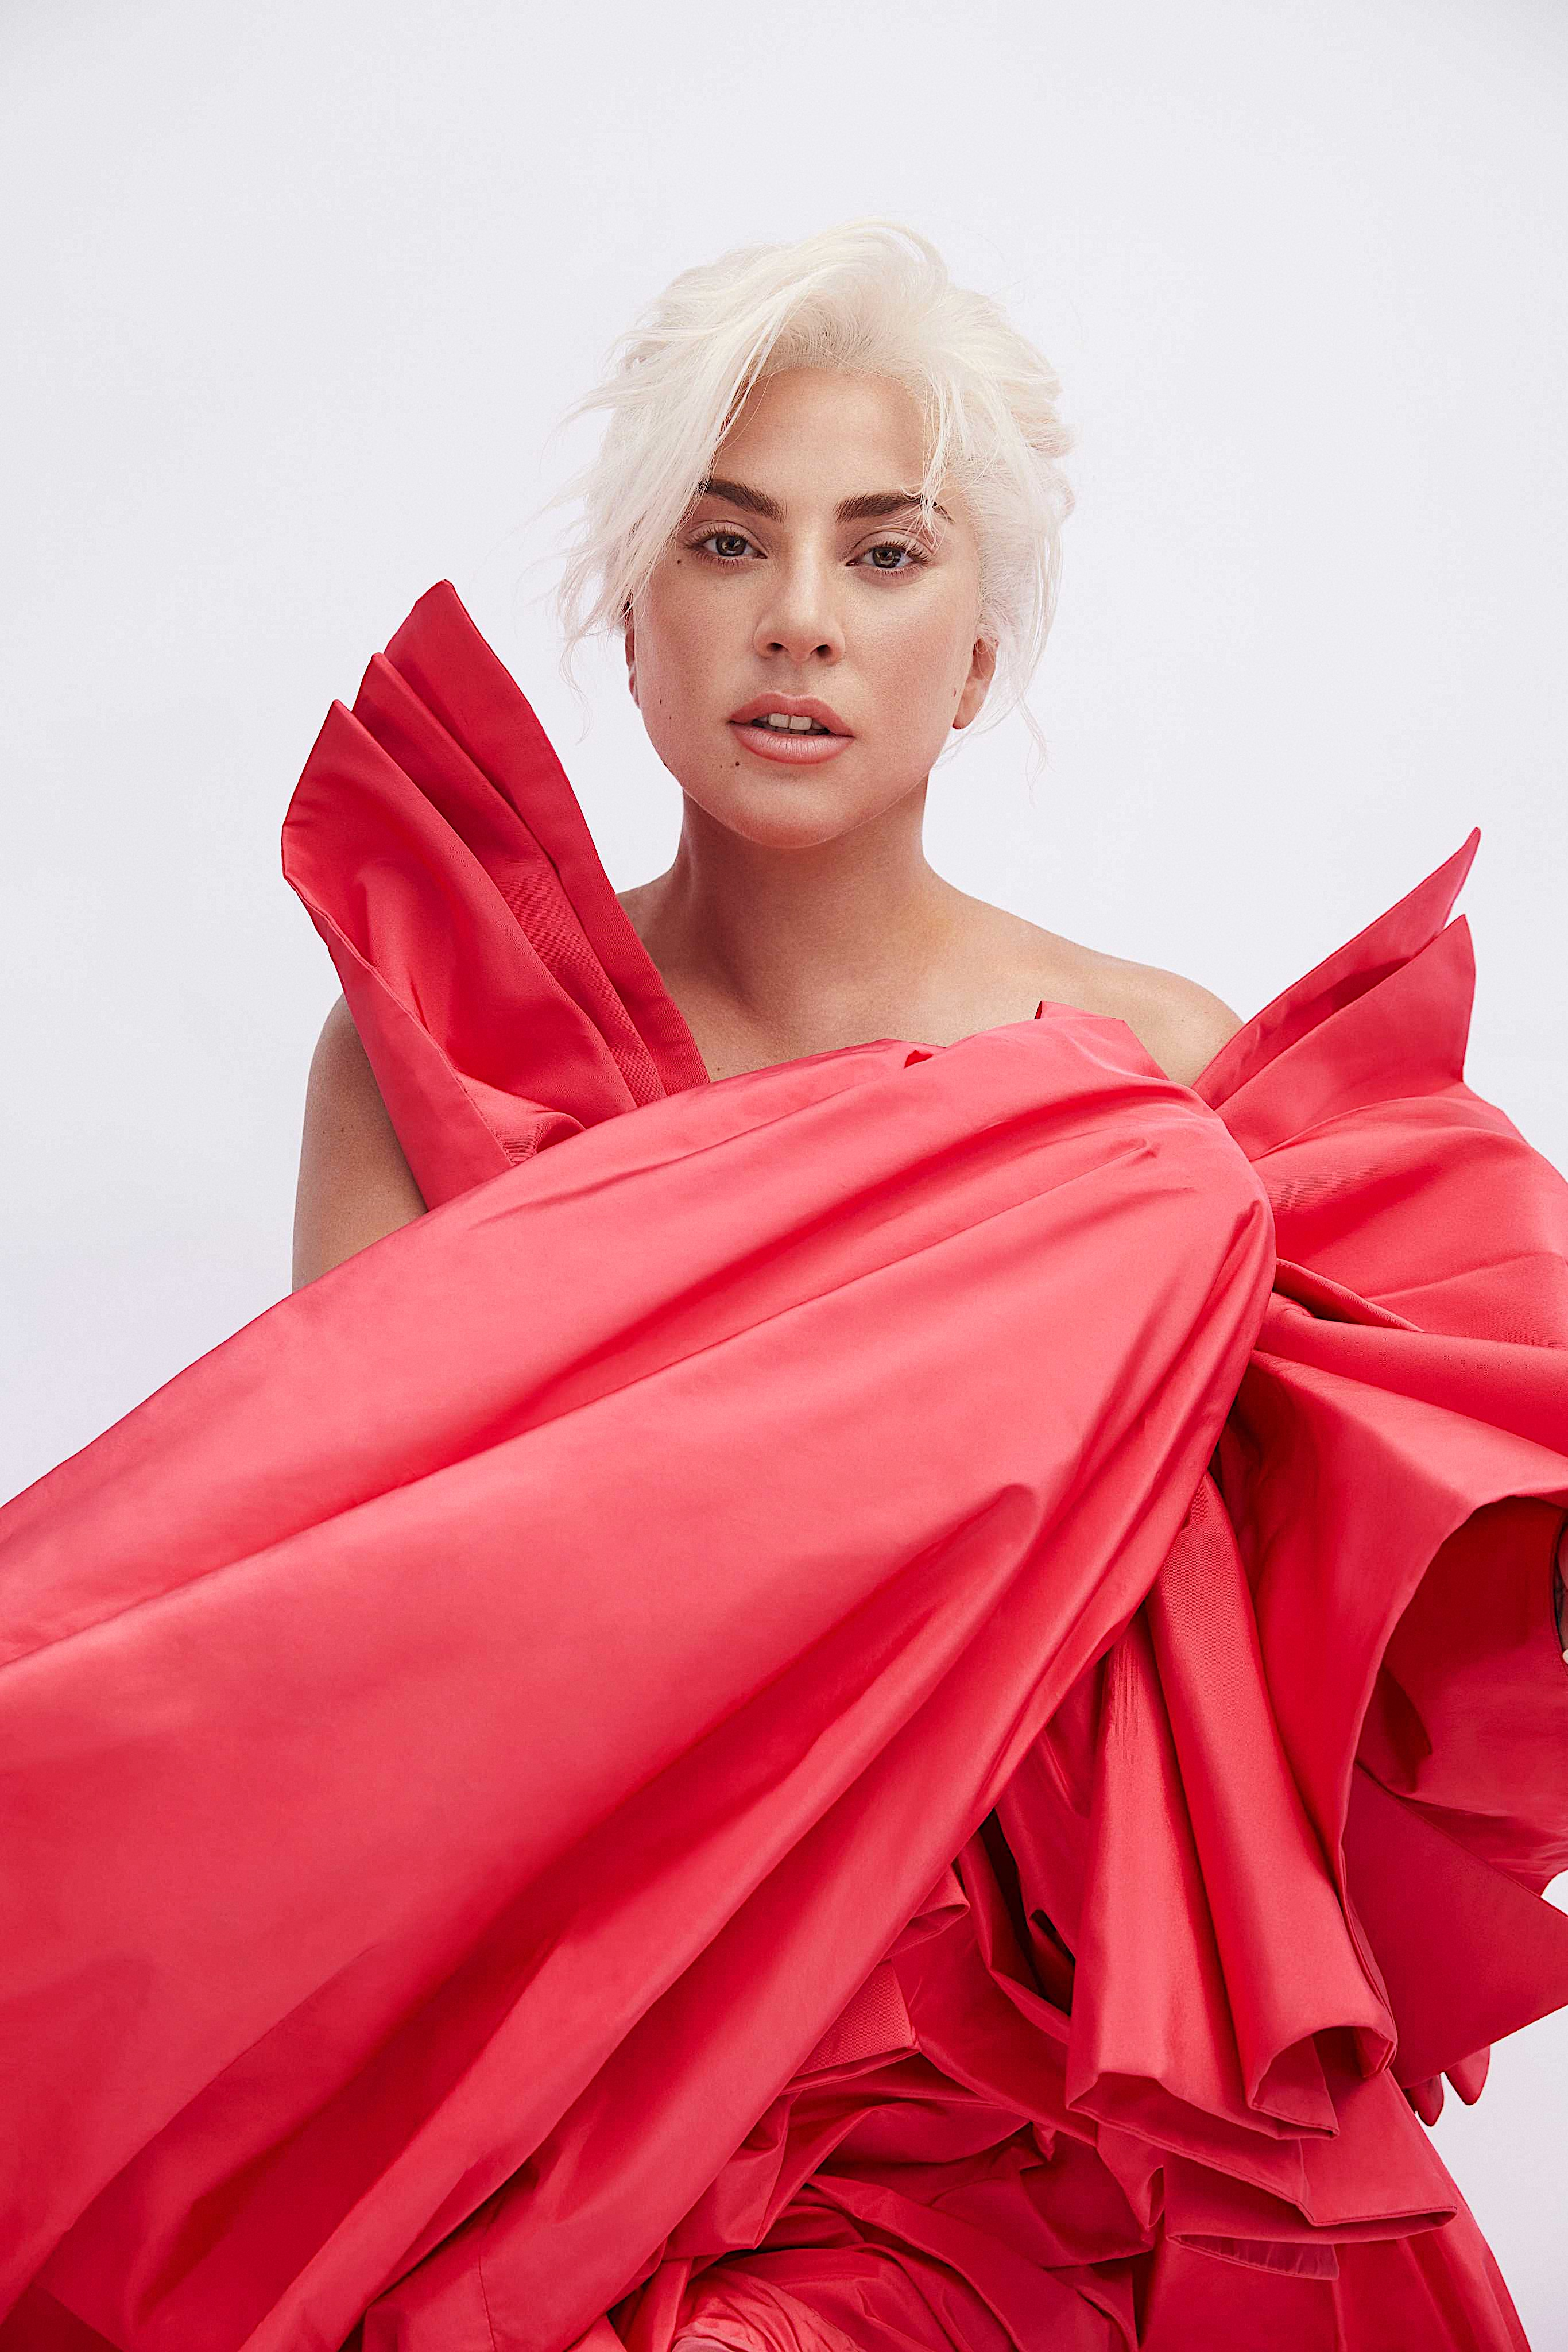 Lady Gaga Pays Homage to Italy as 'House of Gucci' Wraps Filming - Lady Gaga Movie